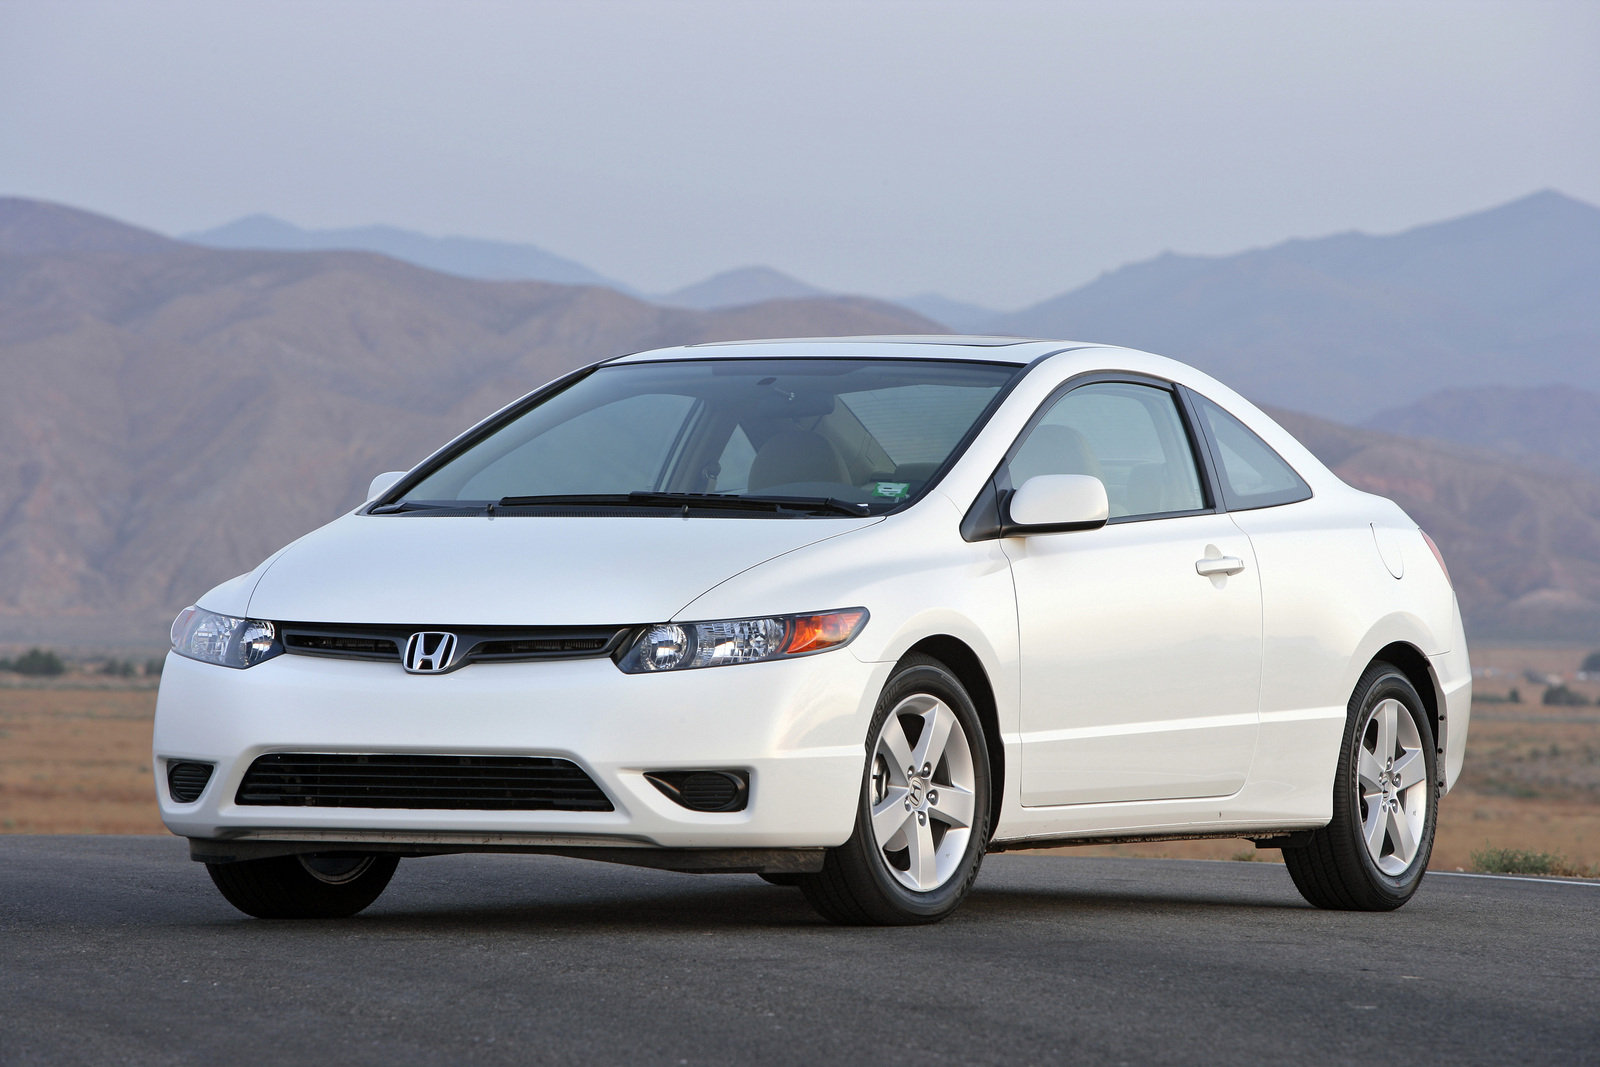 2006 honda civic coupe review top speed. Black Bedroom Furniture Sets. Home Design Ideas